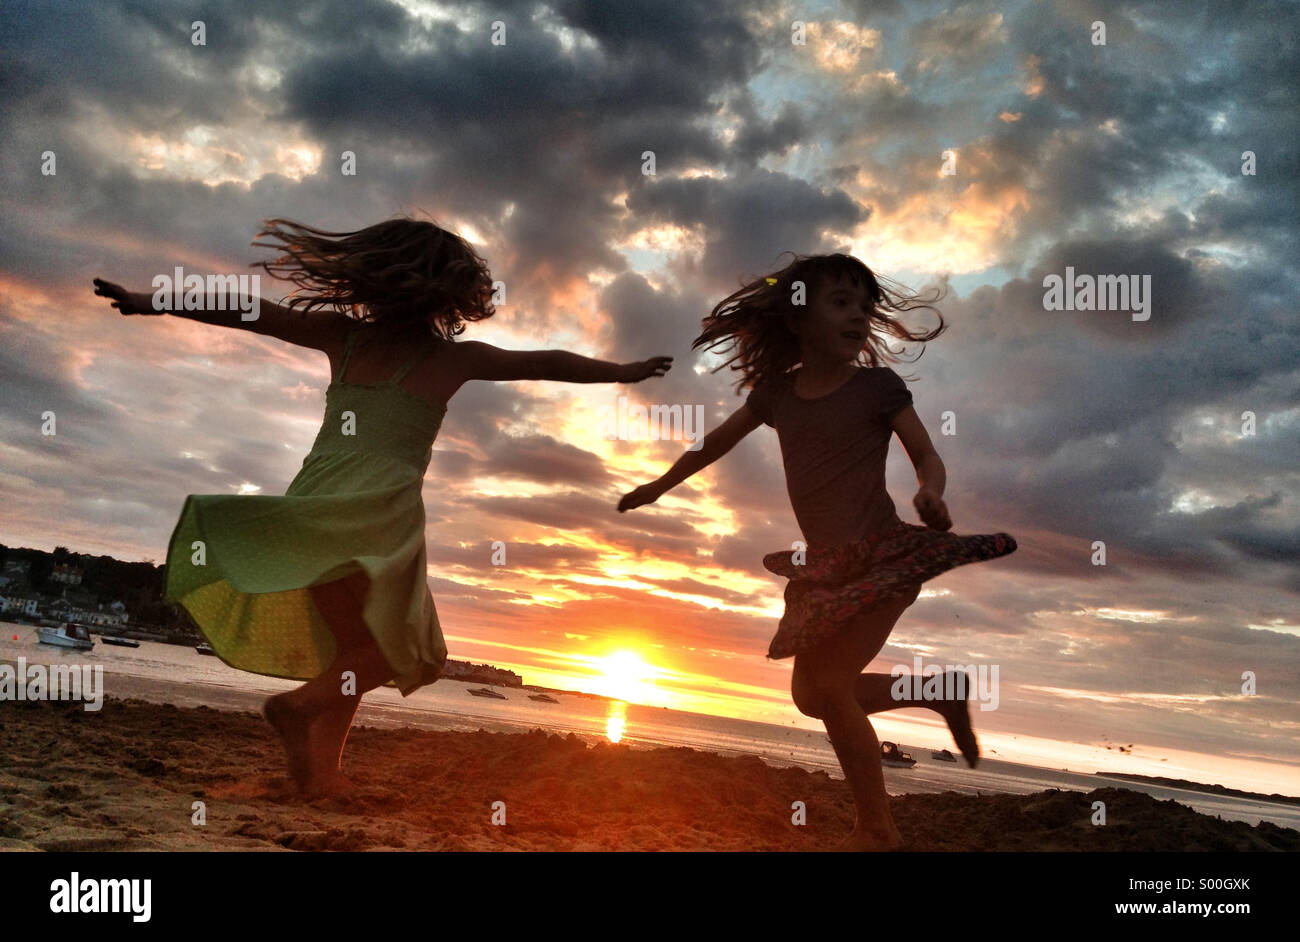 Girls whirl on the sand at sunset on the beach in devon, UK - Stock Image